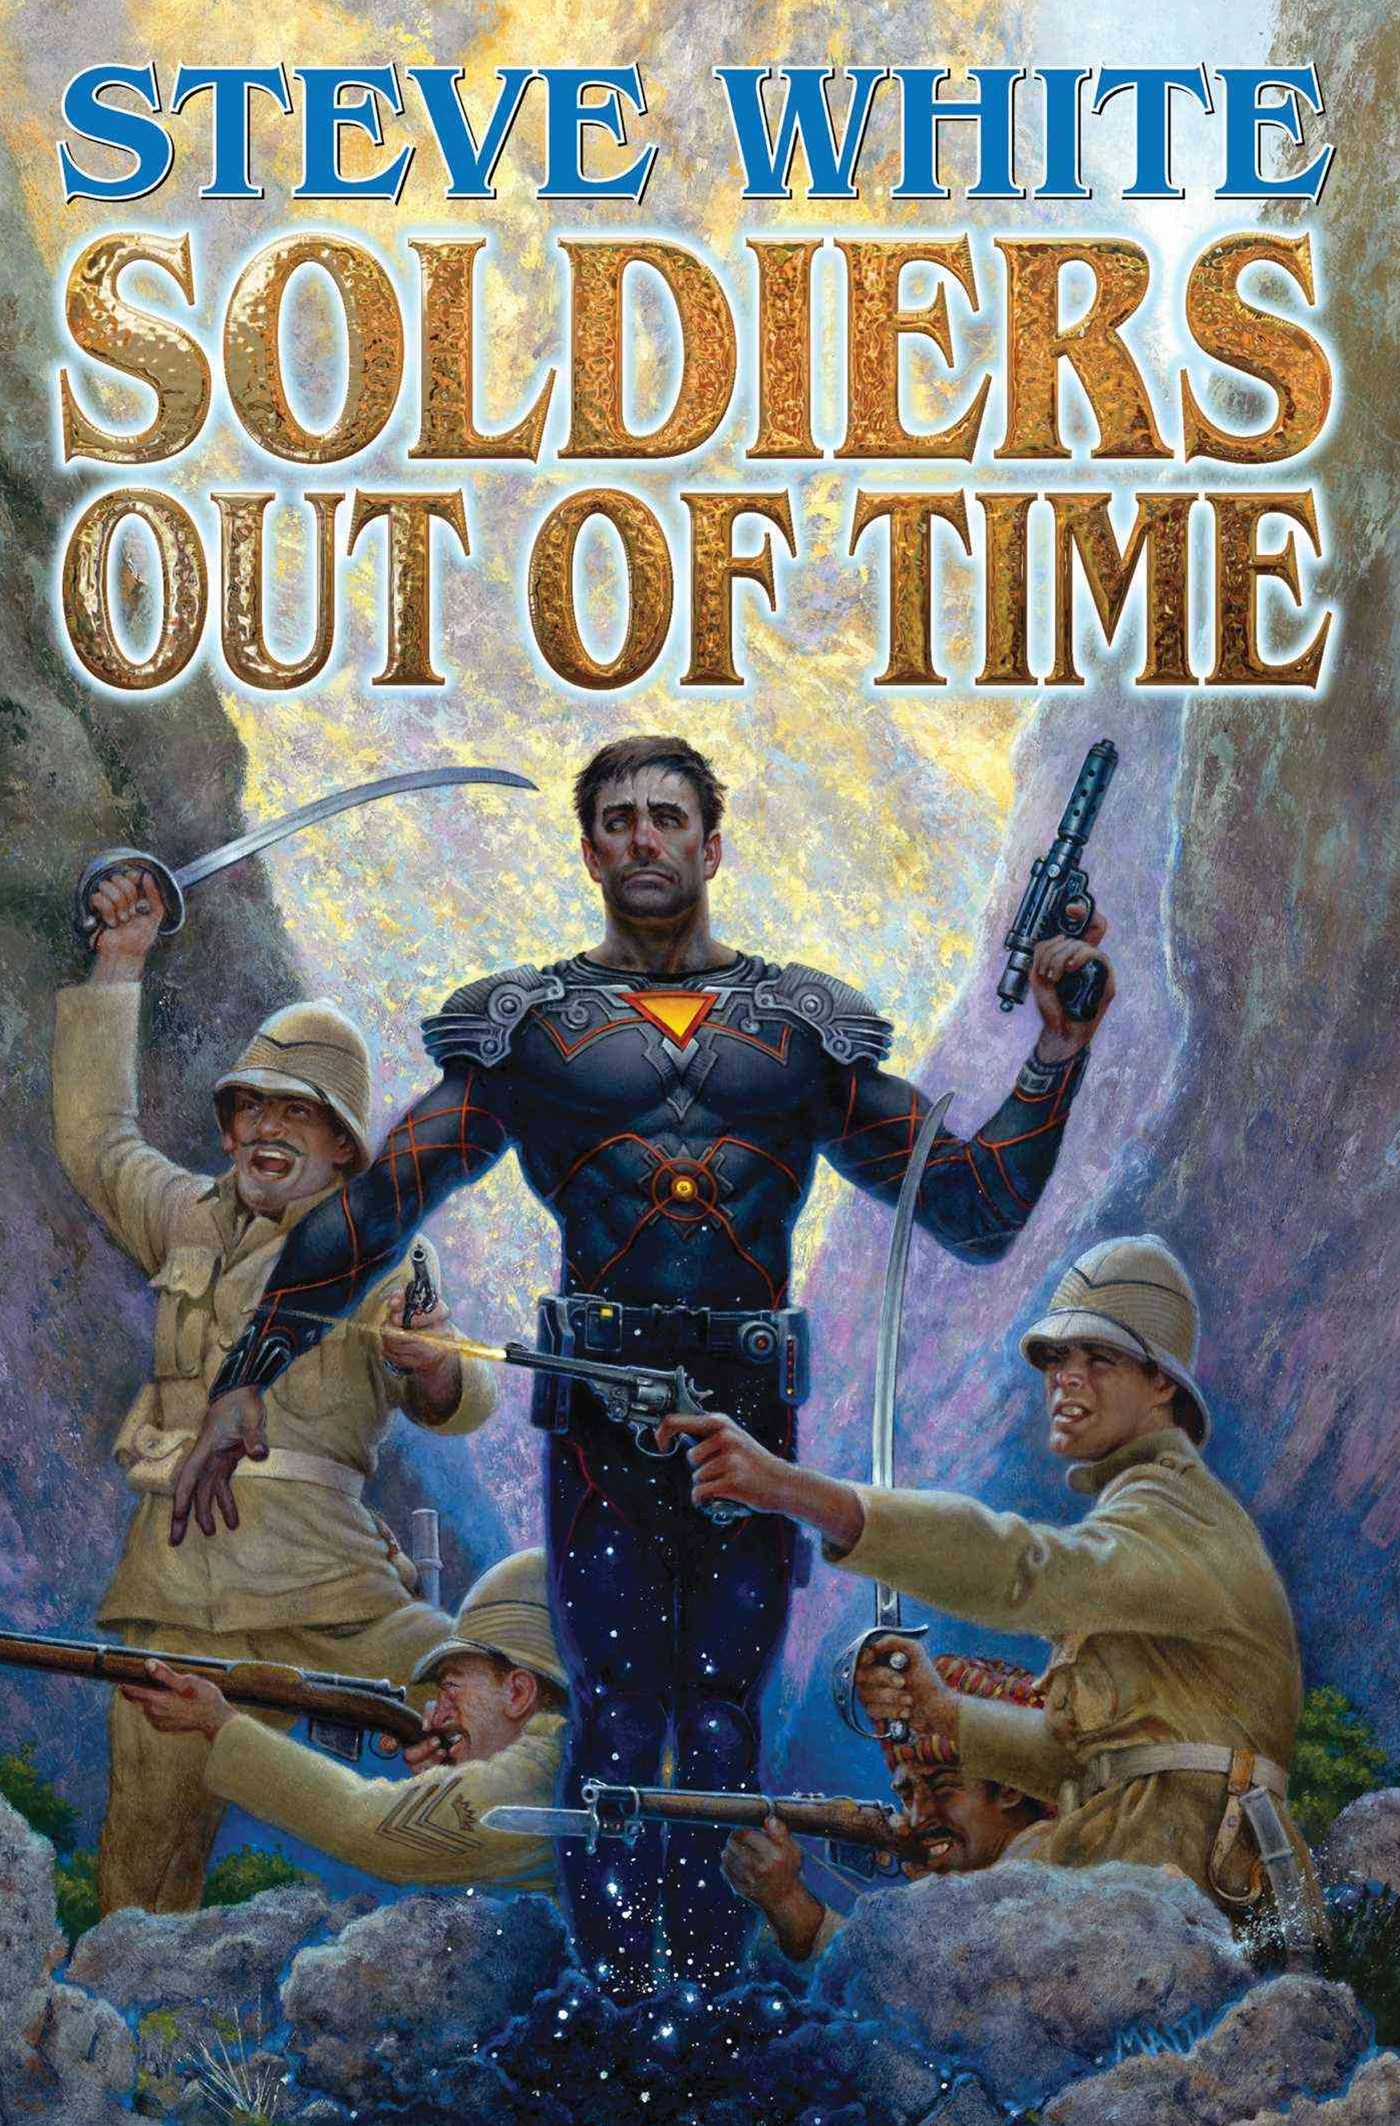 Soldiers Out of Time